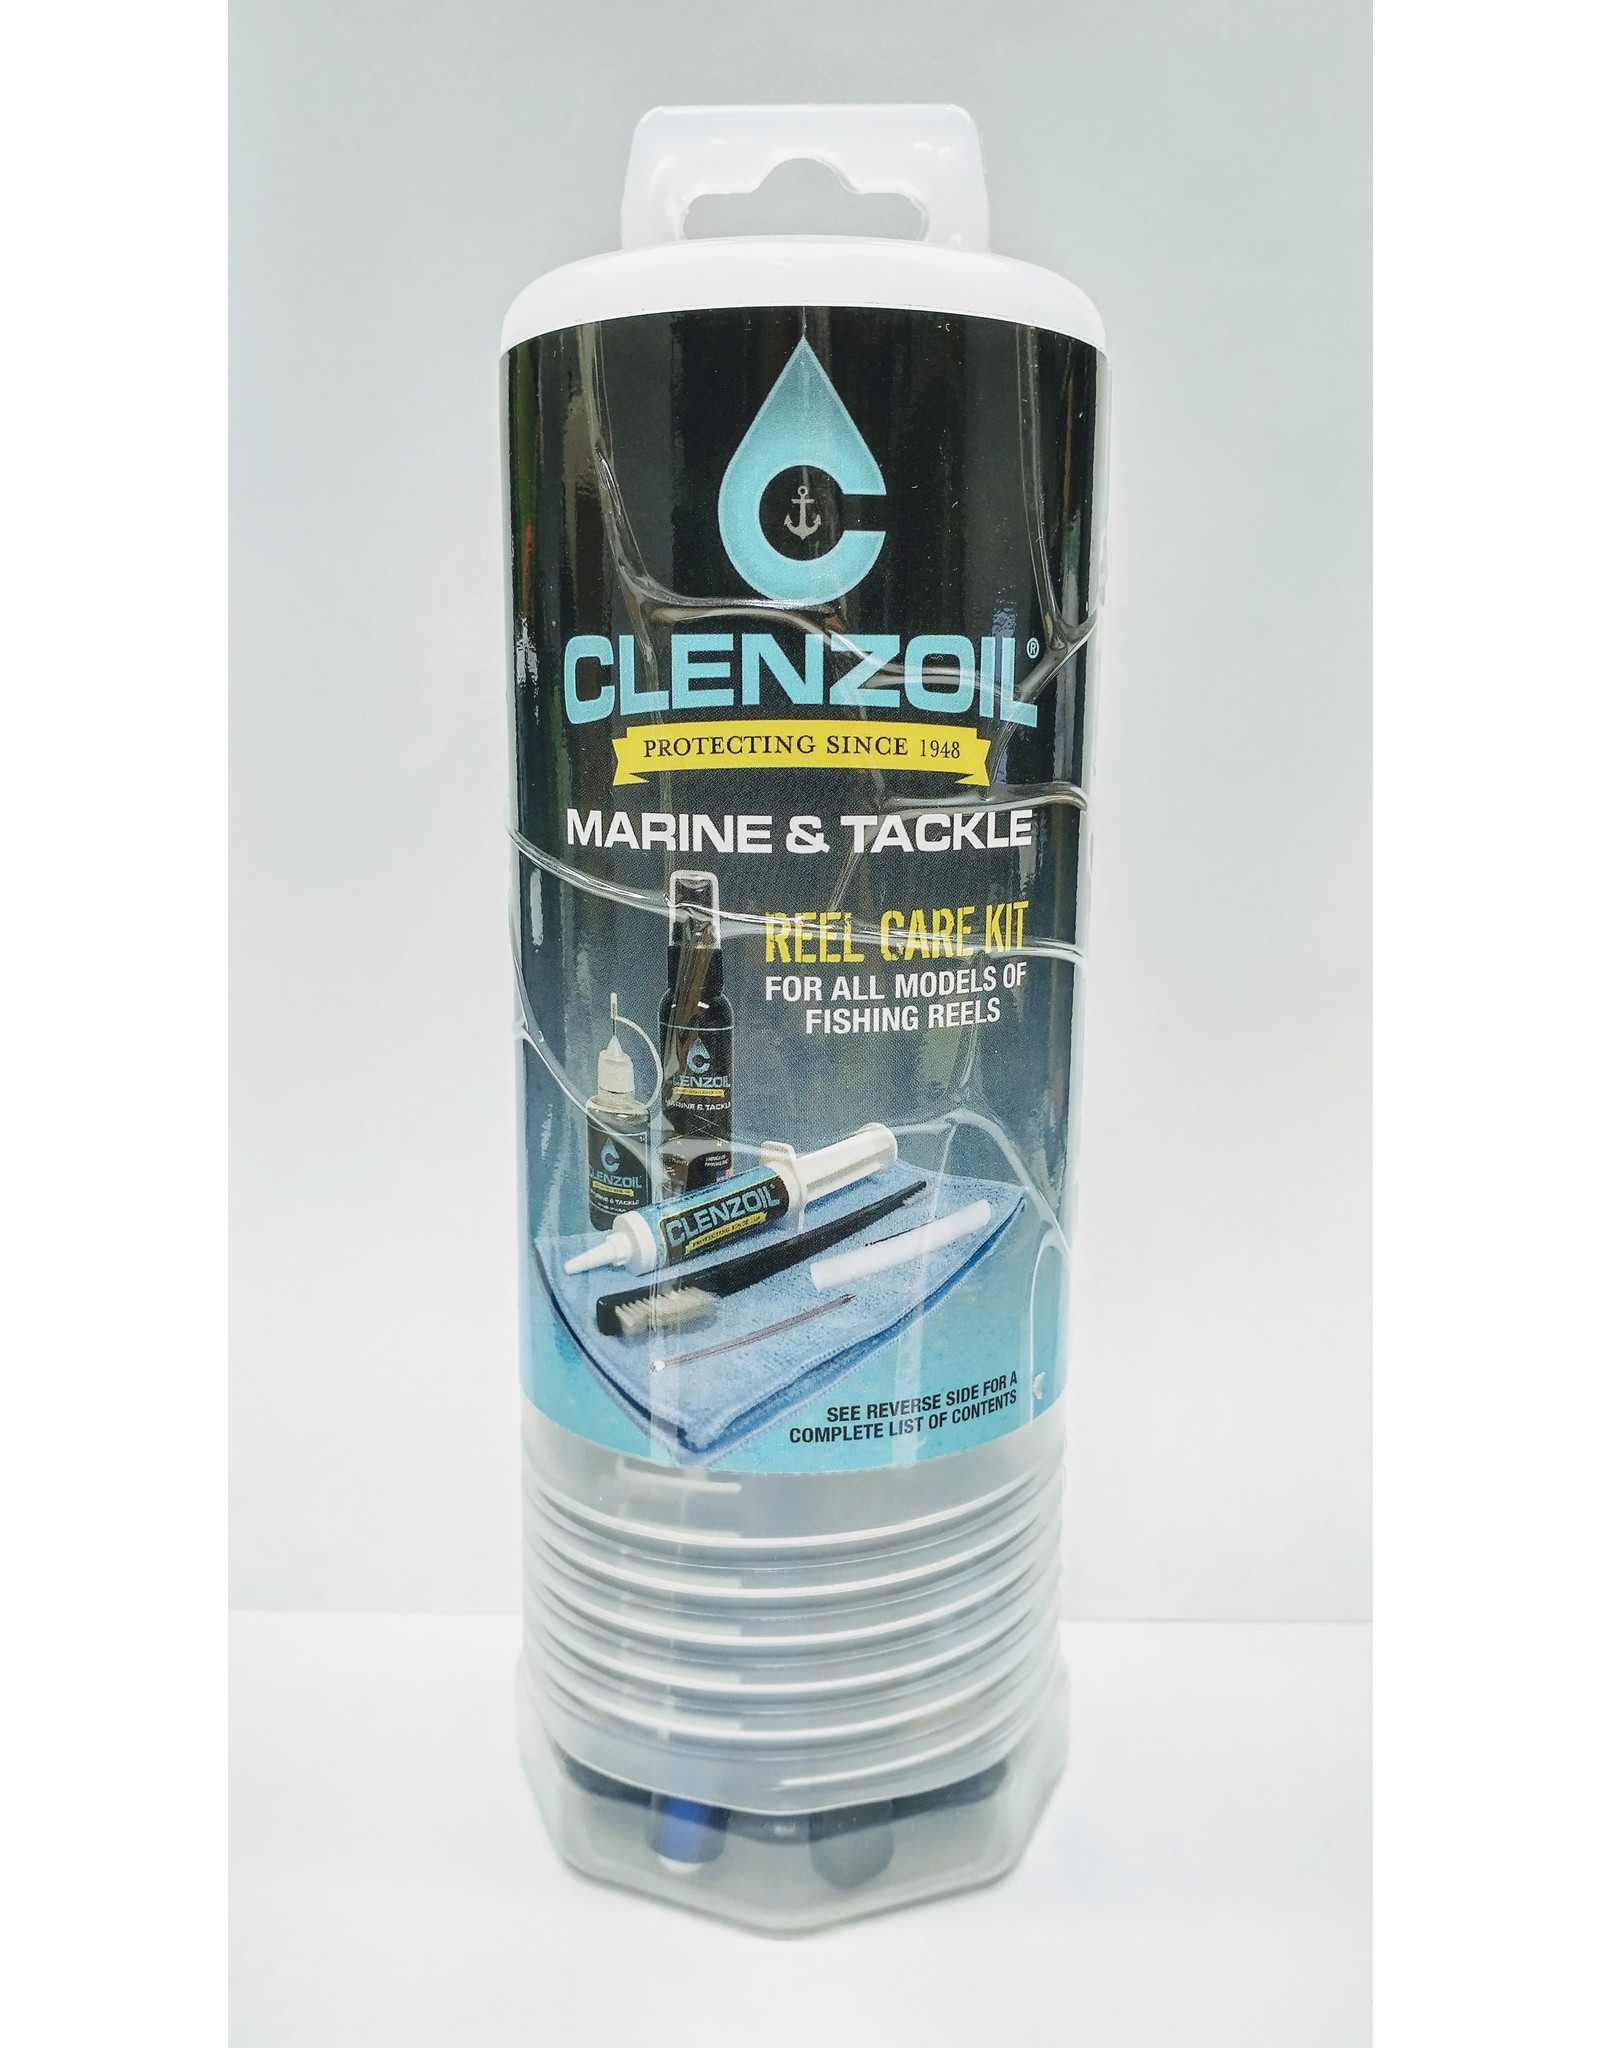 CLENZOIL REEL CARE KIT